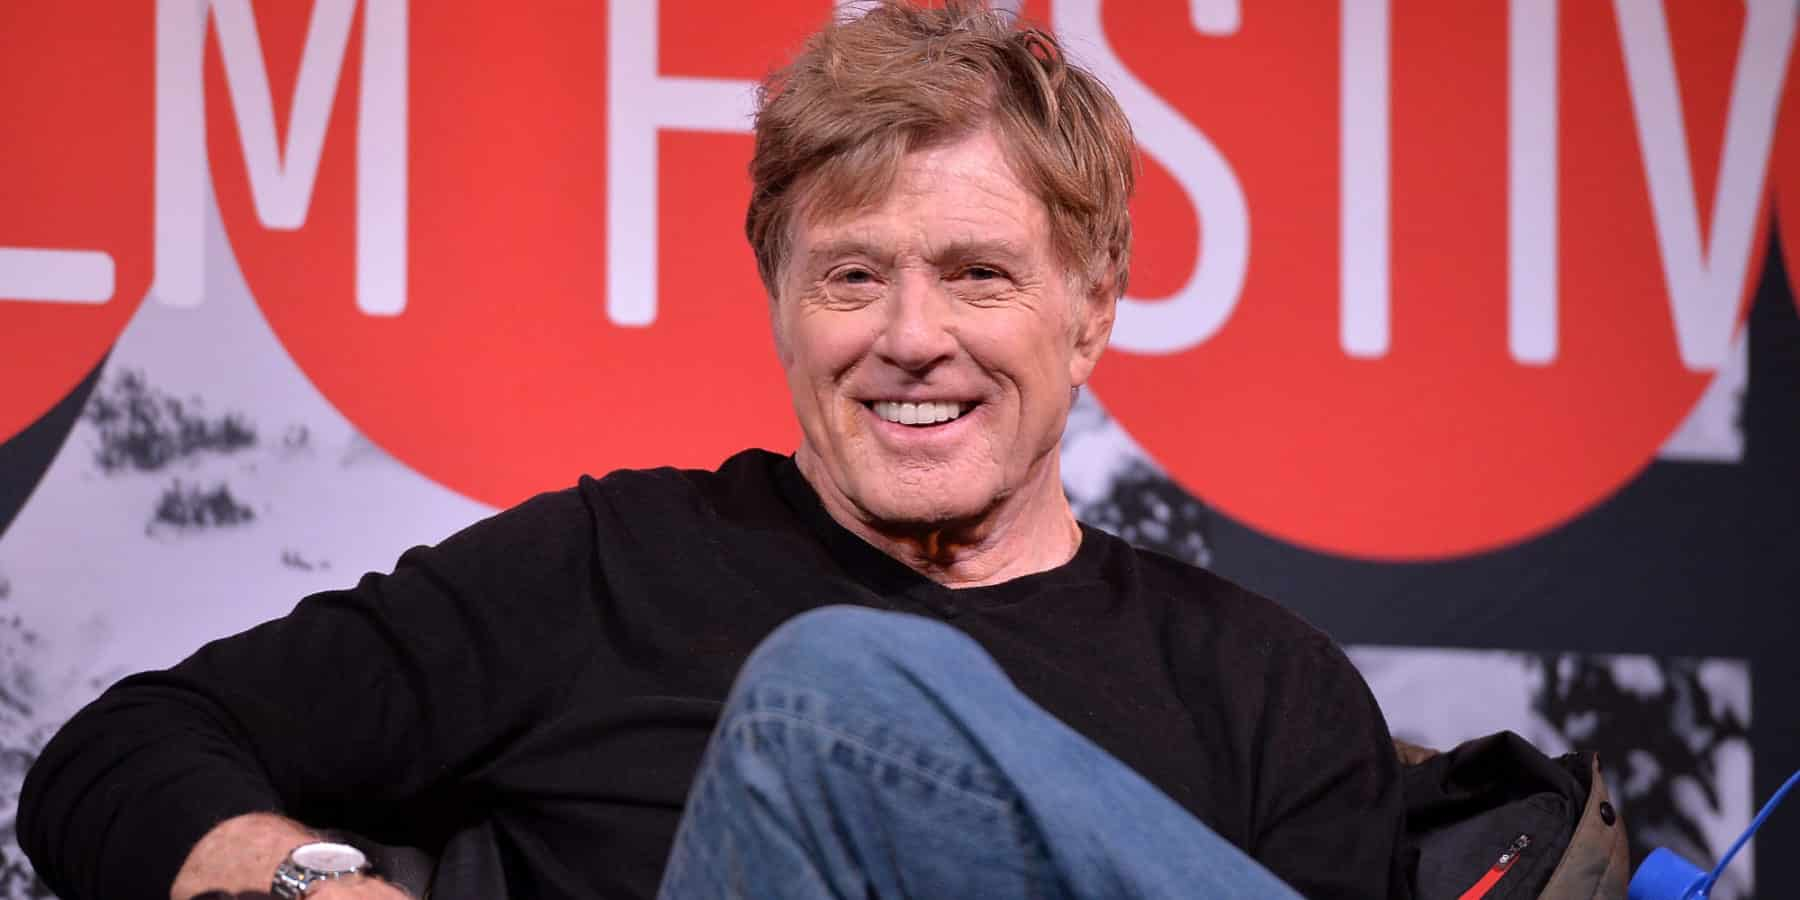 Robert Redford confirma retiro de la actuación con The Old Man and the Gun de David Lowery